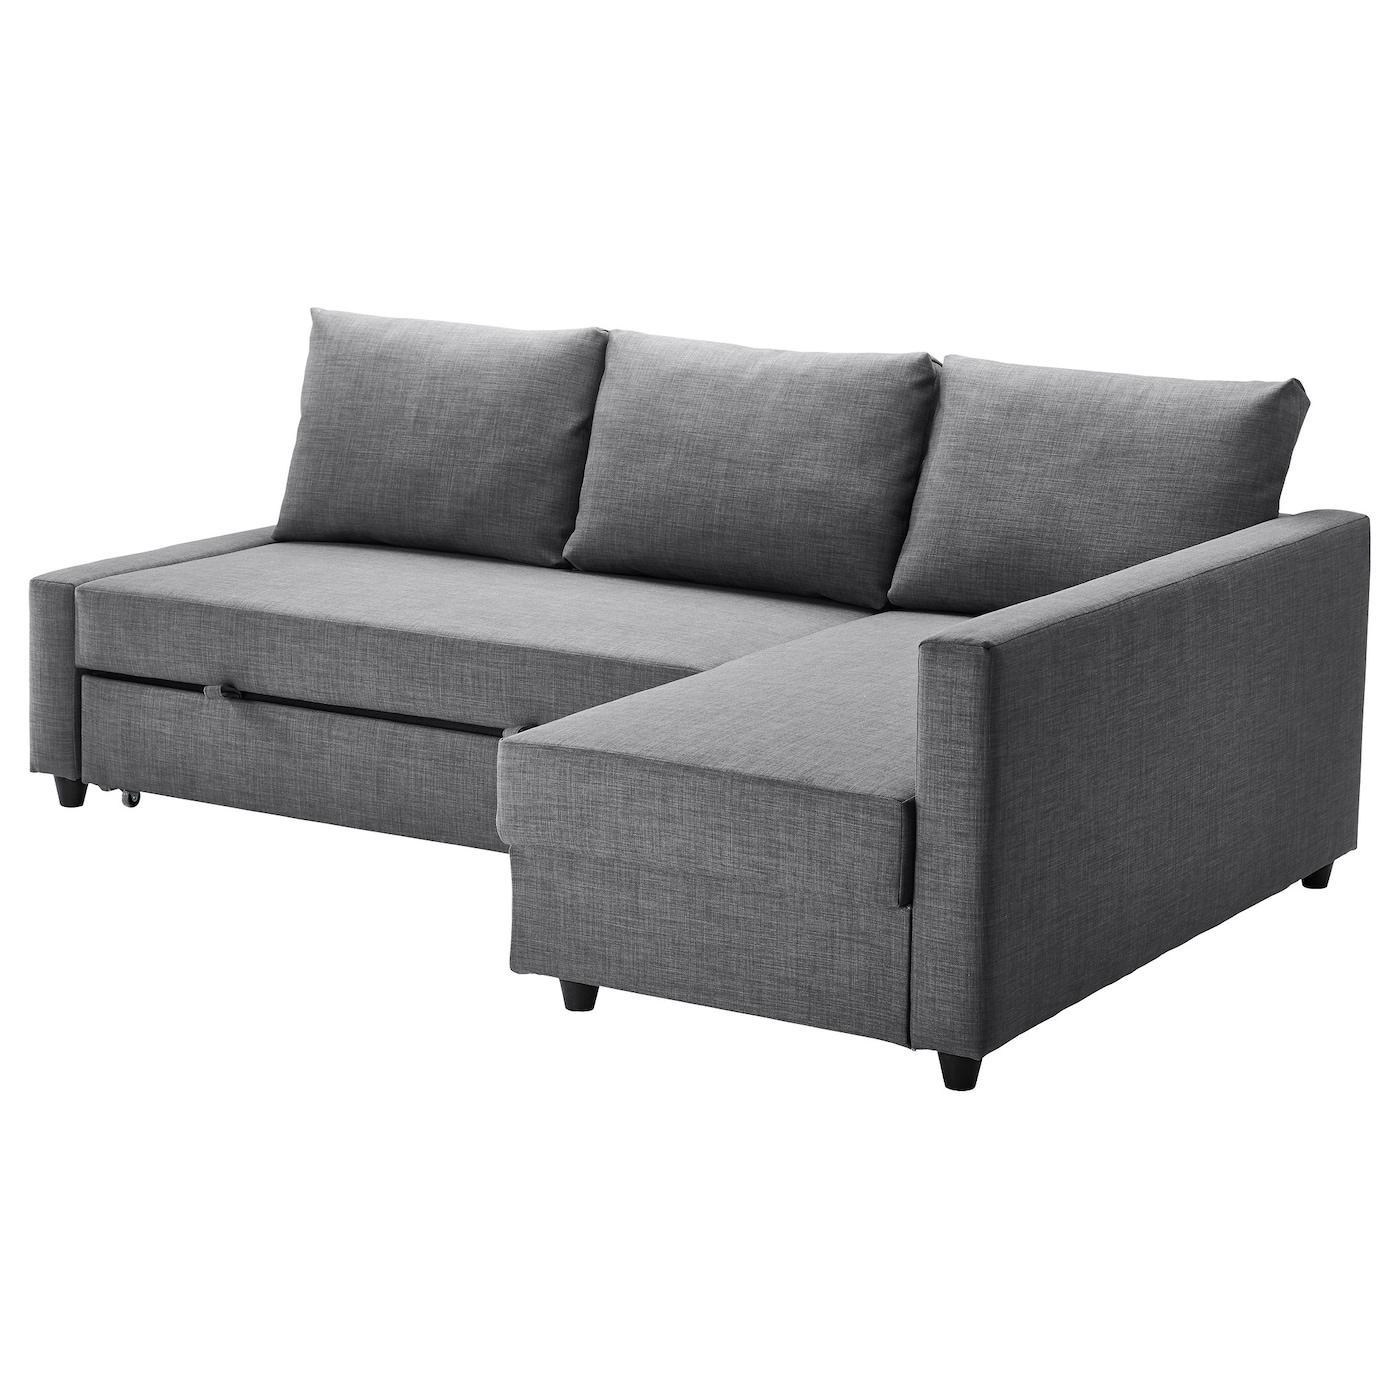 FRIHETEN Corner sofabed with storage Skiftebo dark grey IKEA